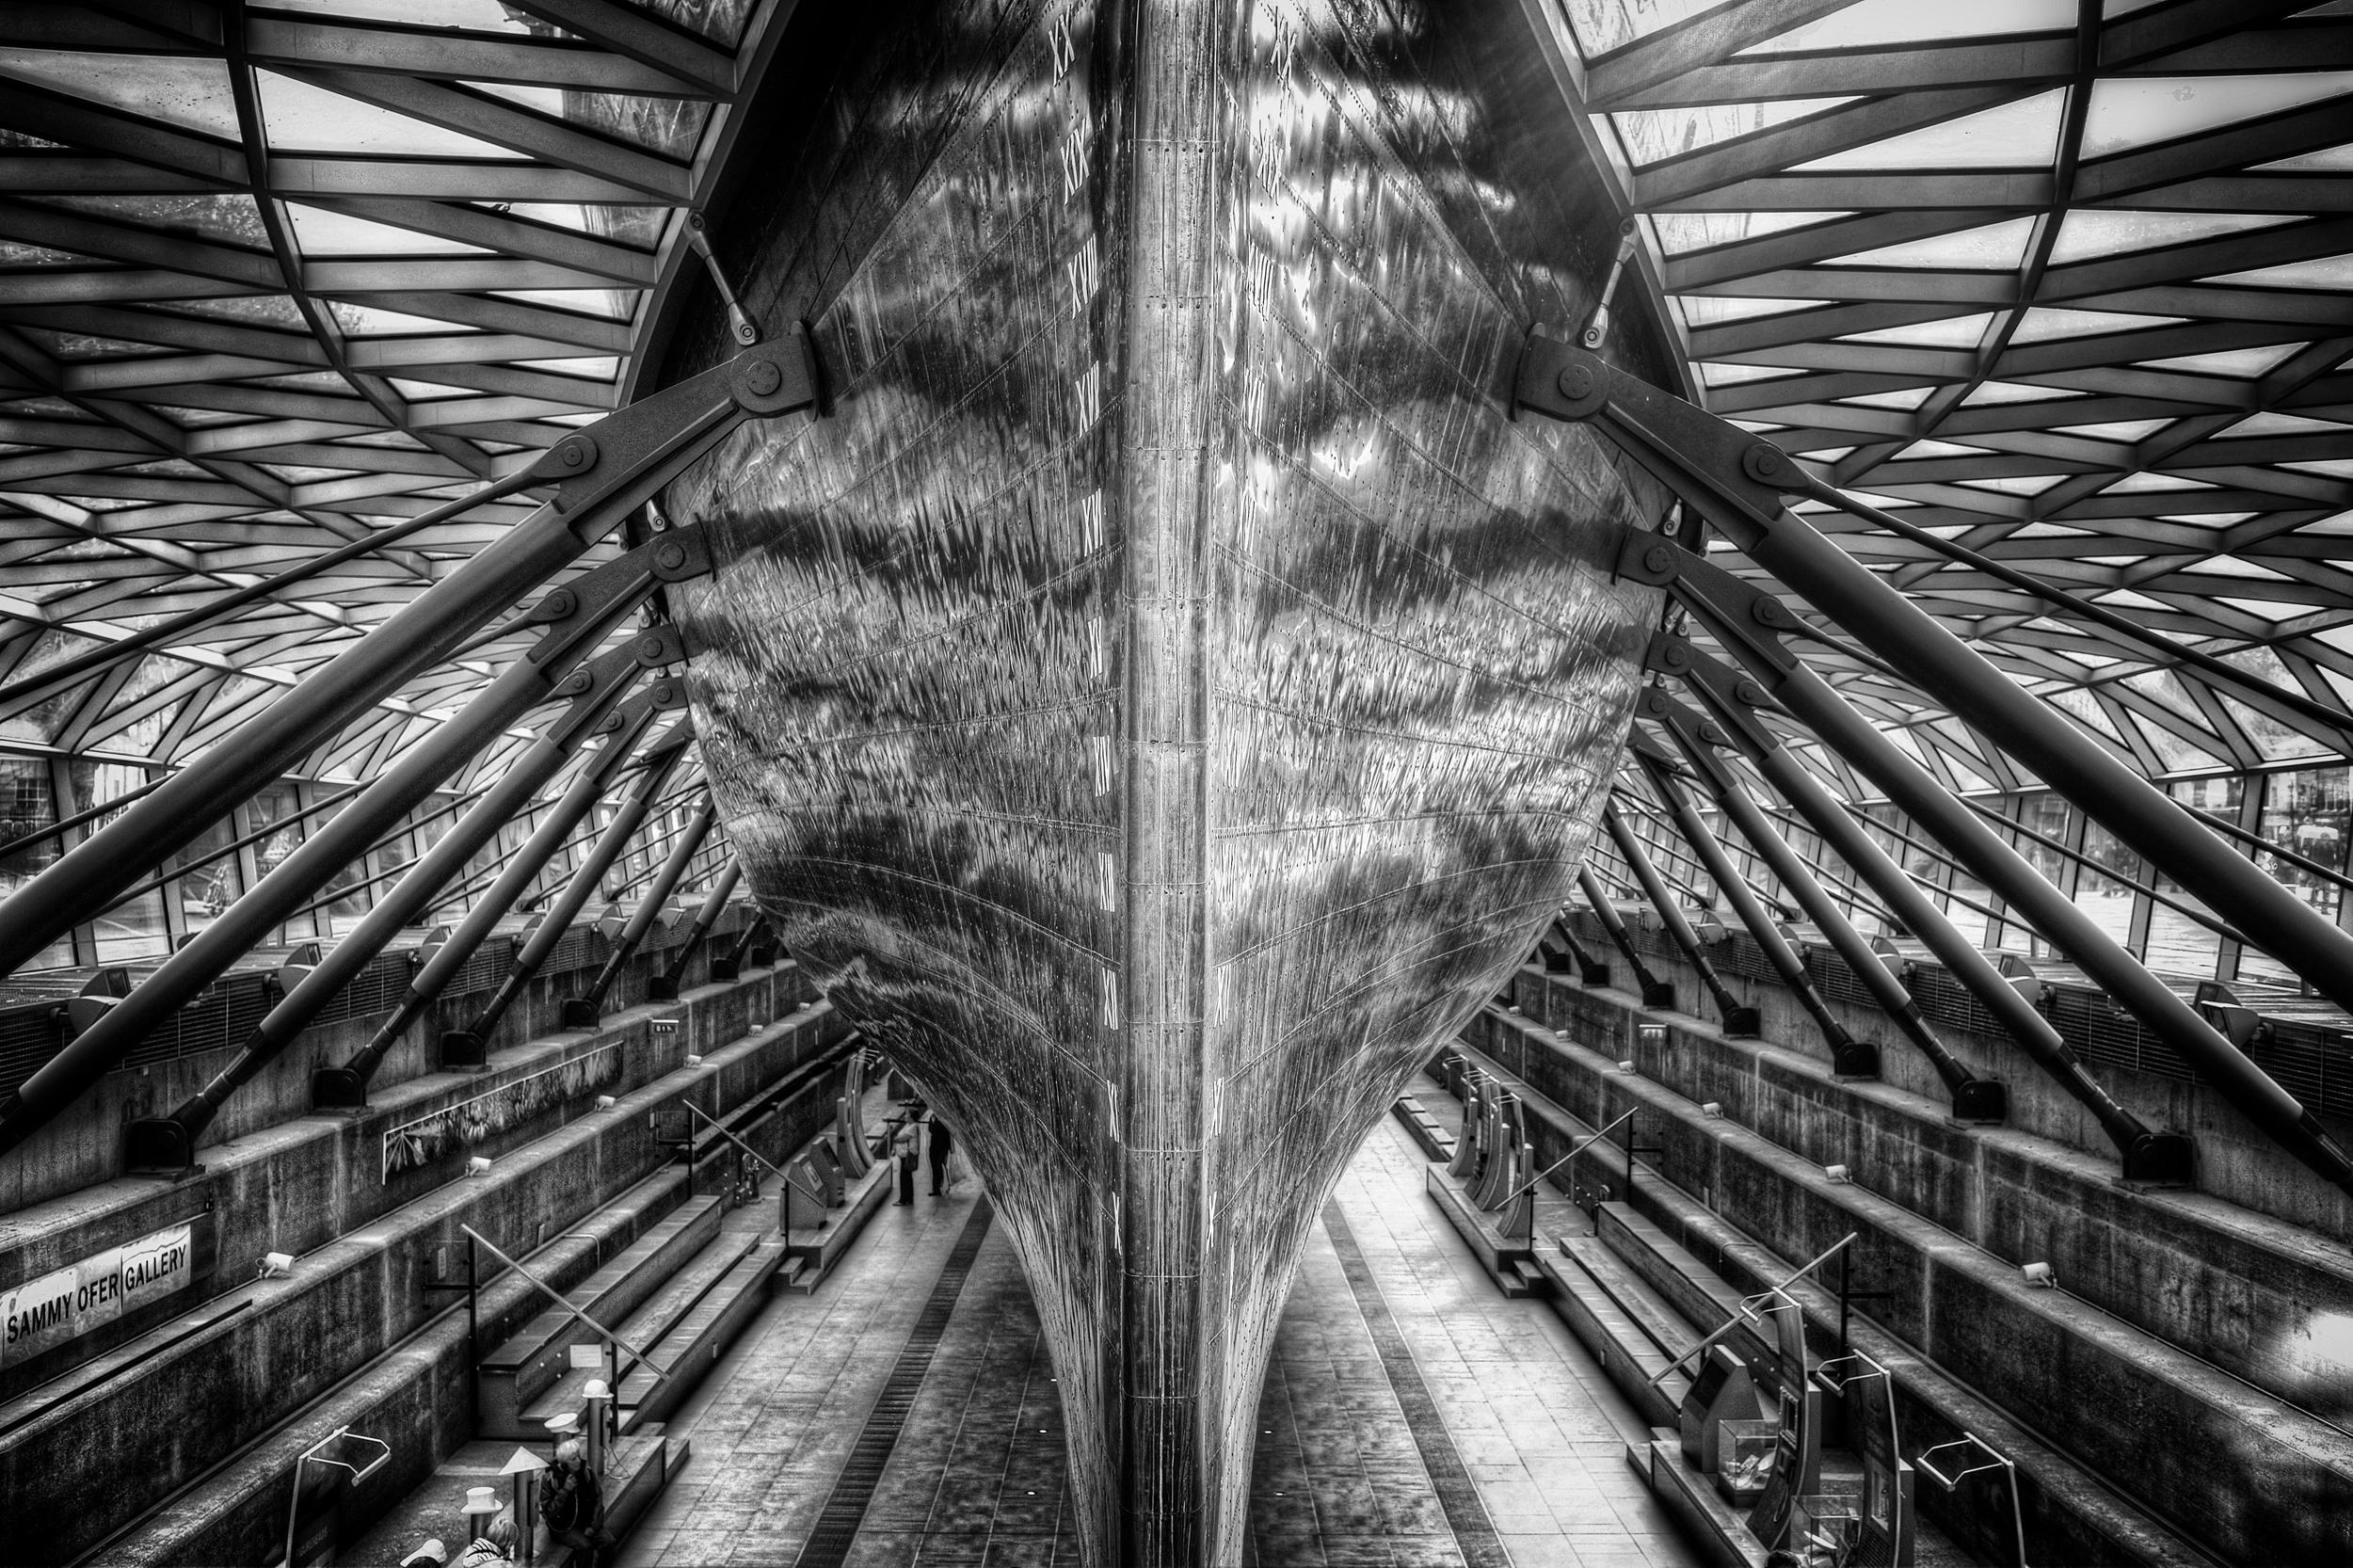 The Cutty Sark - Links to the about page.